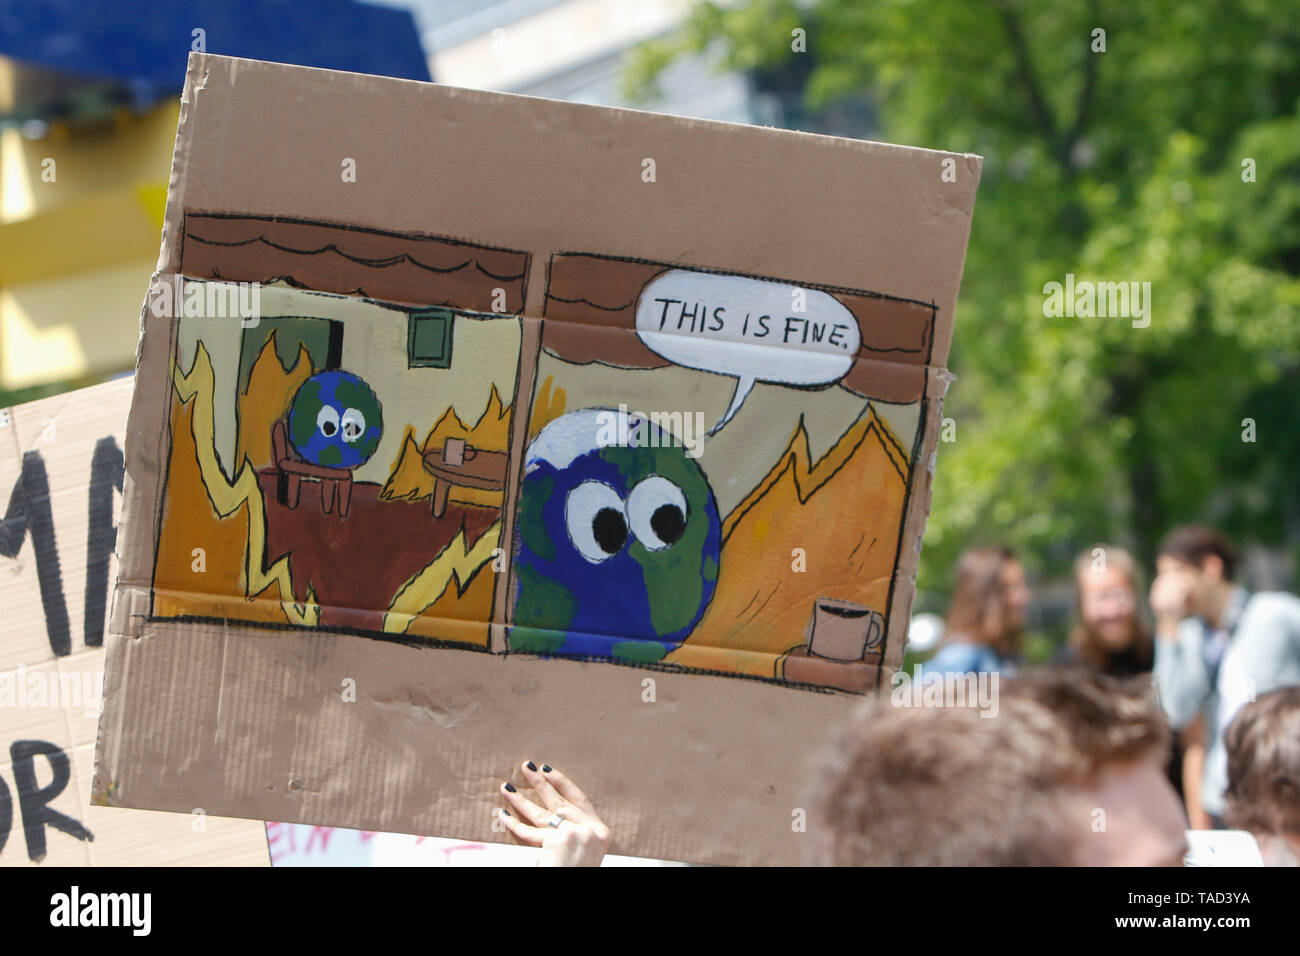 Frankfurt, Germany. 24th May 2019. A protester carries a sign with a cartoon of the planet Earth in a burning room that reads 'This is fine'. Around 4,500 young people marched through Frankfurt to the European Central Bank, to protest against the climate change and for the introduction of measurements against it. The protest took place as part of an Europe wide climate strike, two days ahead of the 2019 European elections. - Stock Image